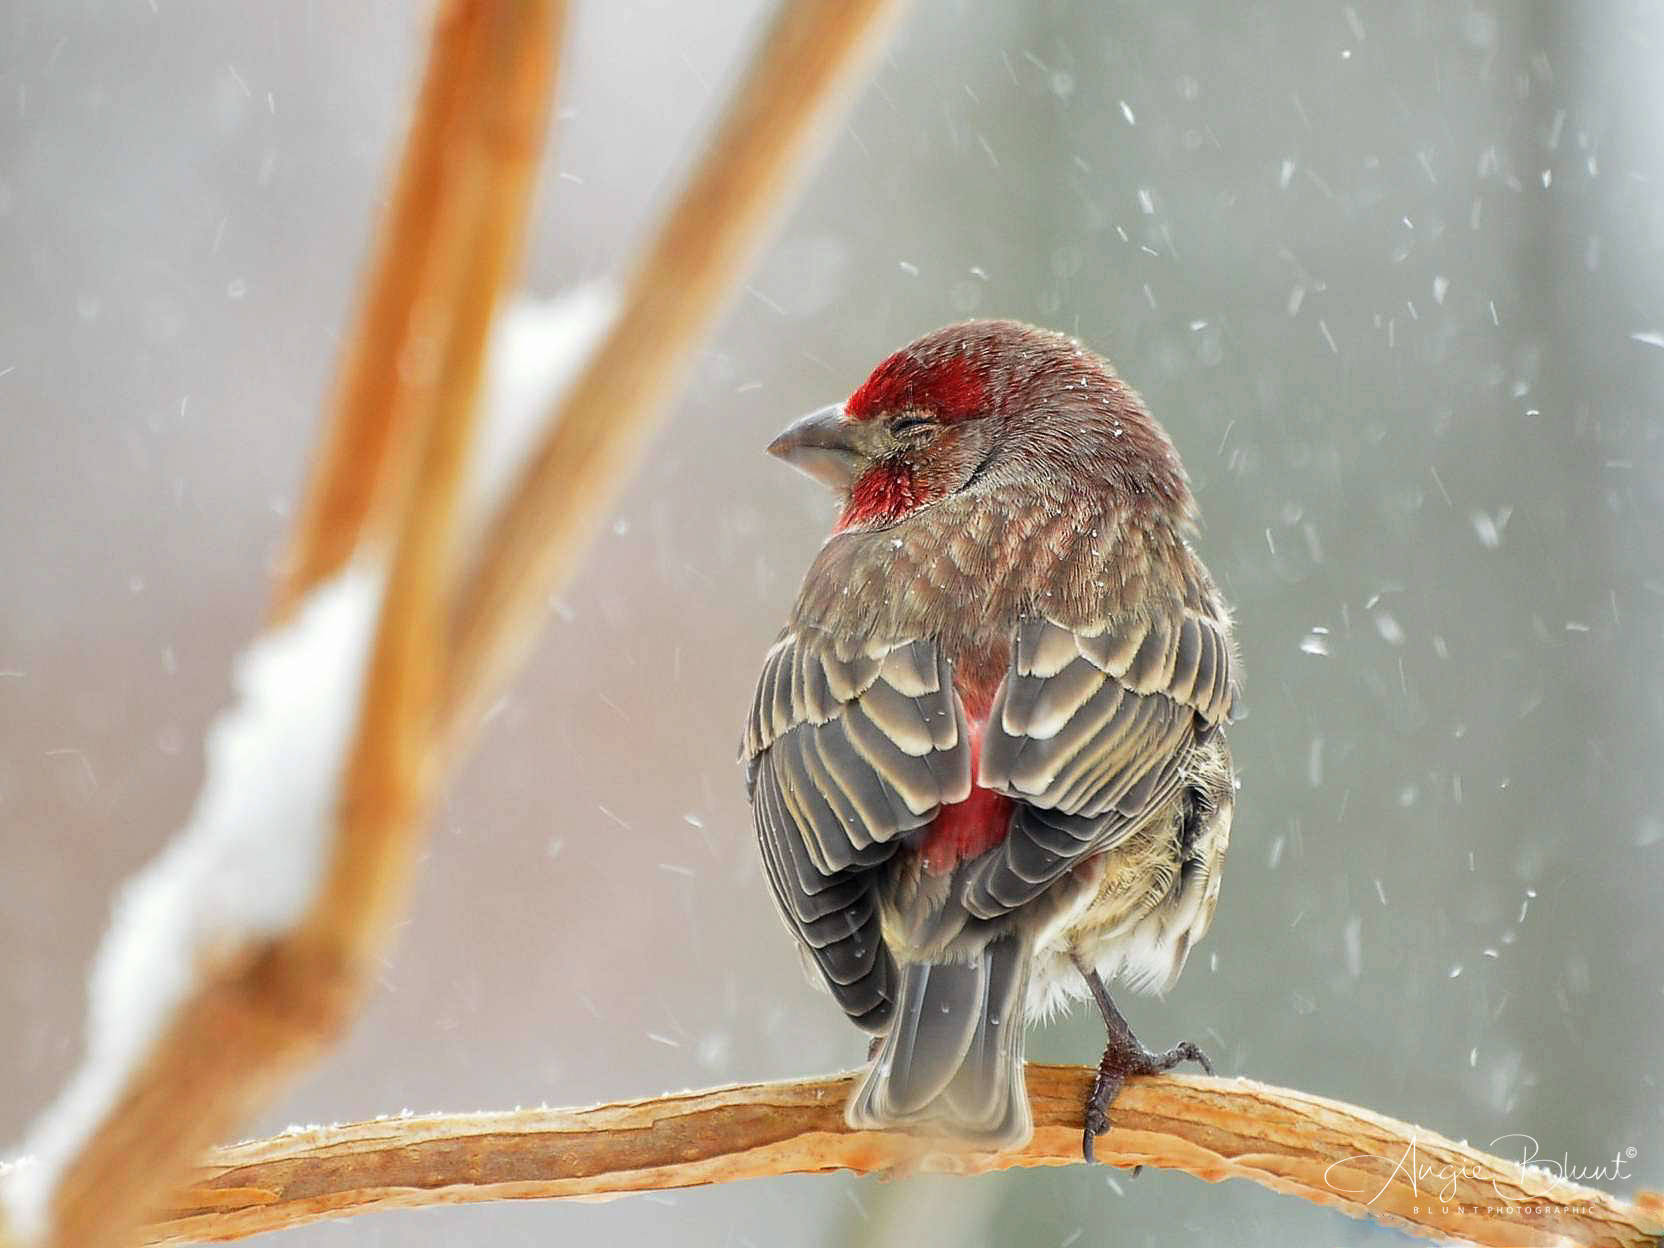 House Finch, Green, Ohio (2011) -  Angie Blunt